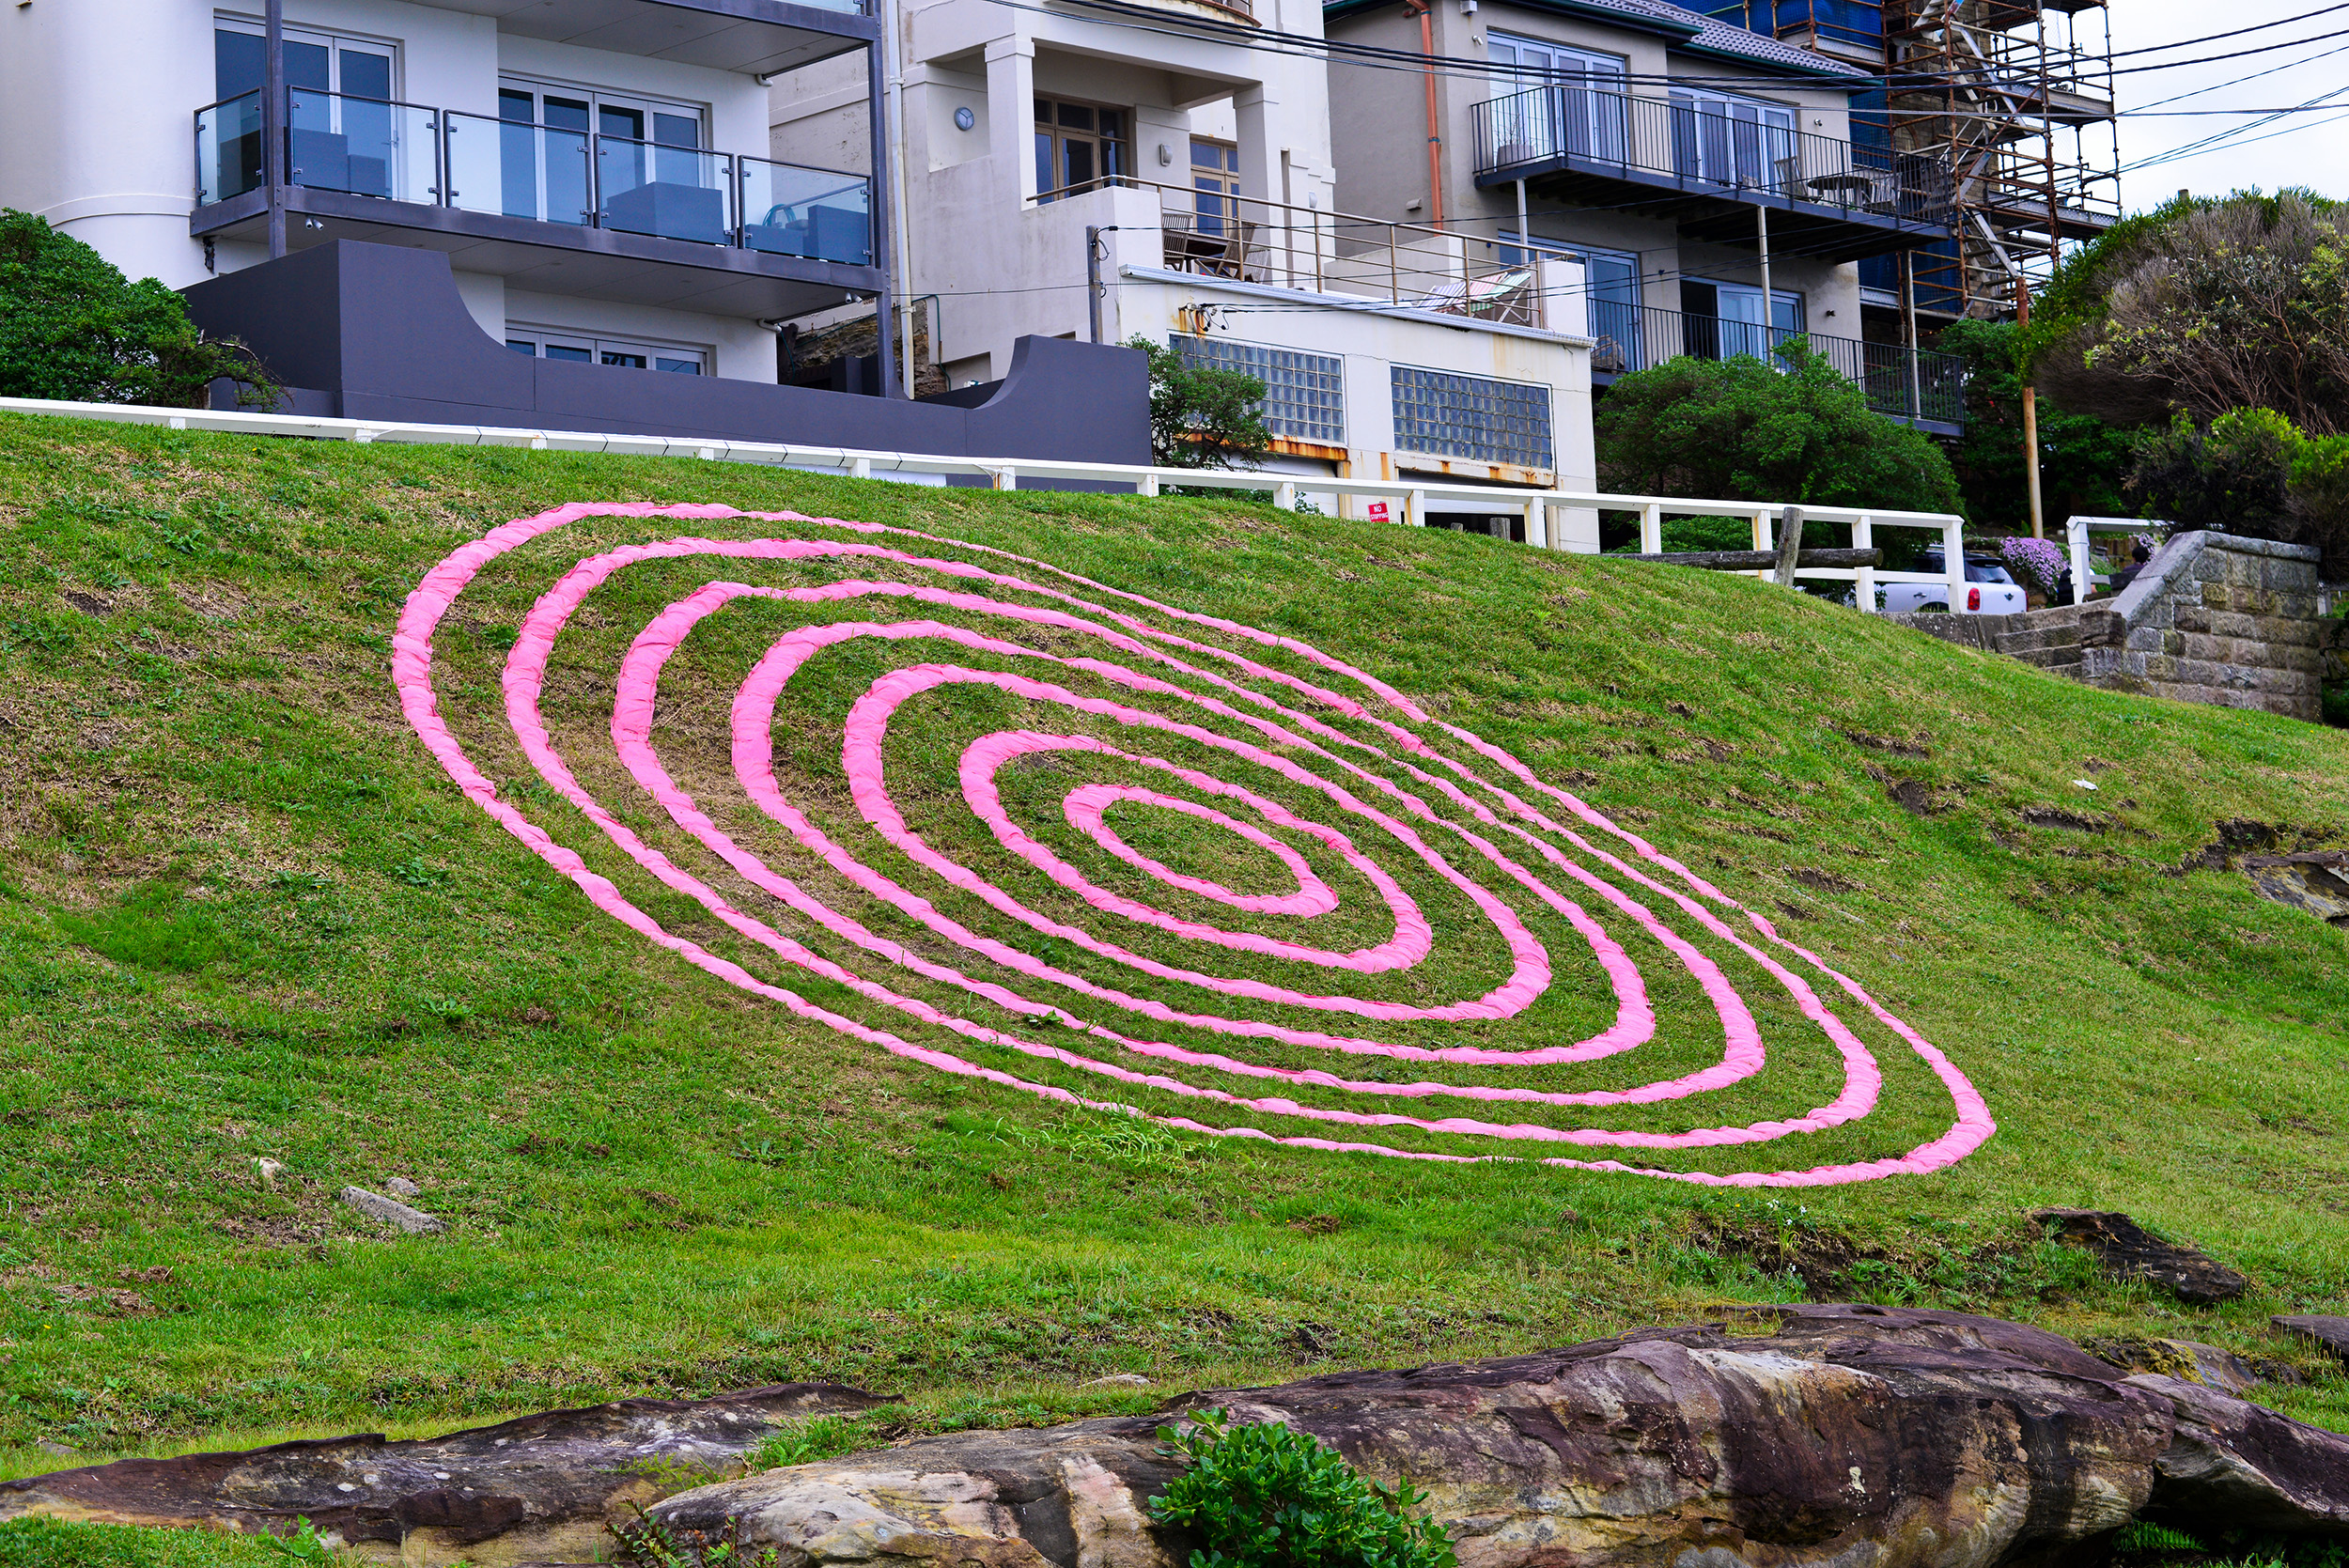 Veronica Herber, Fabrication, Sculpture by the Sea, Bondi 2015. Photo Clyde YEe